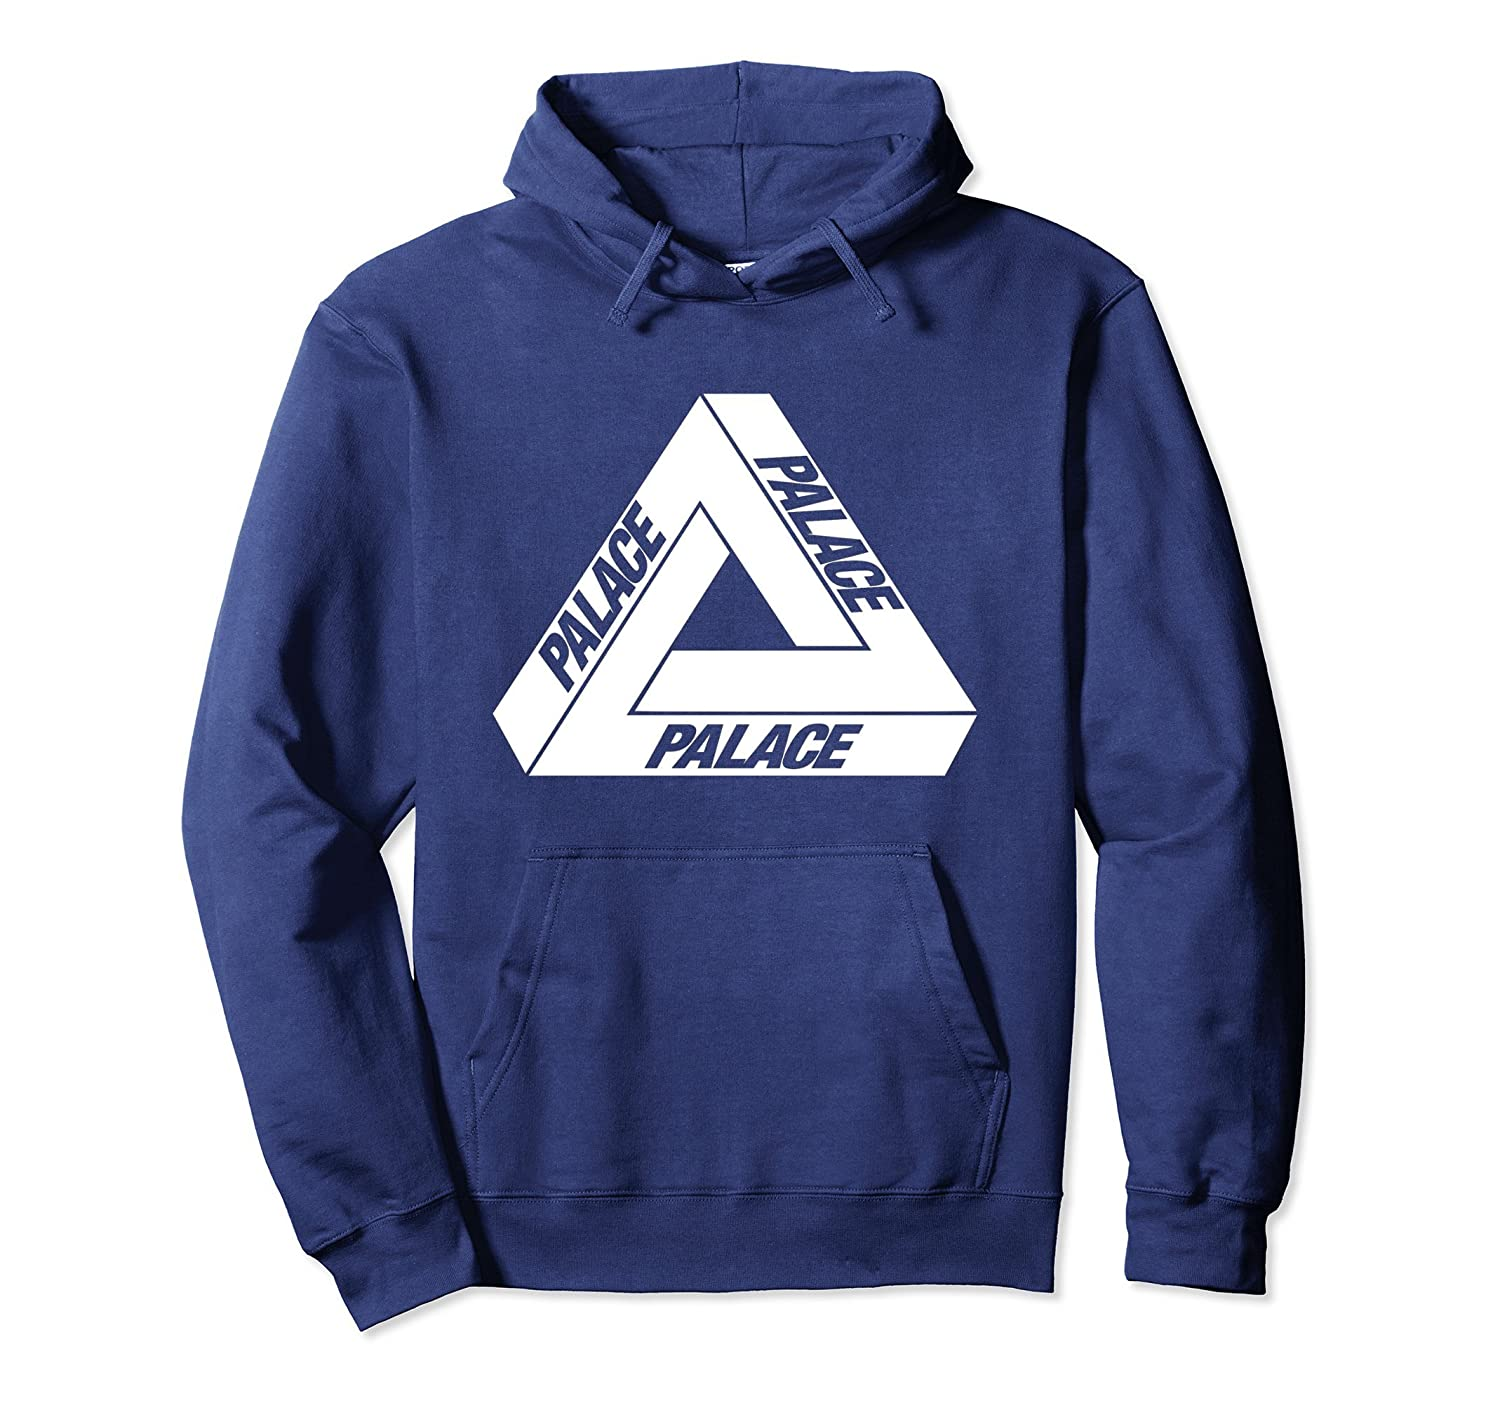 970e05b1627d Palace Triangle Pullover Hoodie-ah my shirt one gift – Ahmyshirt